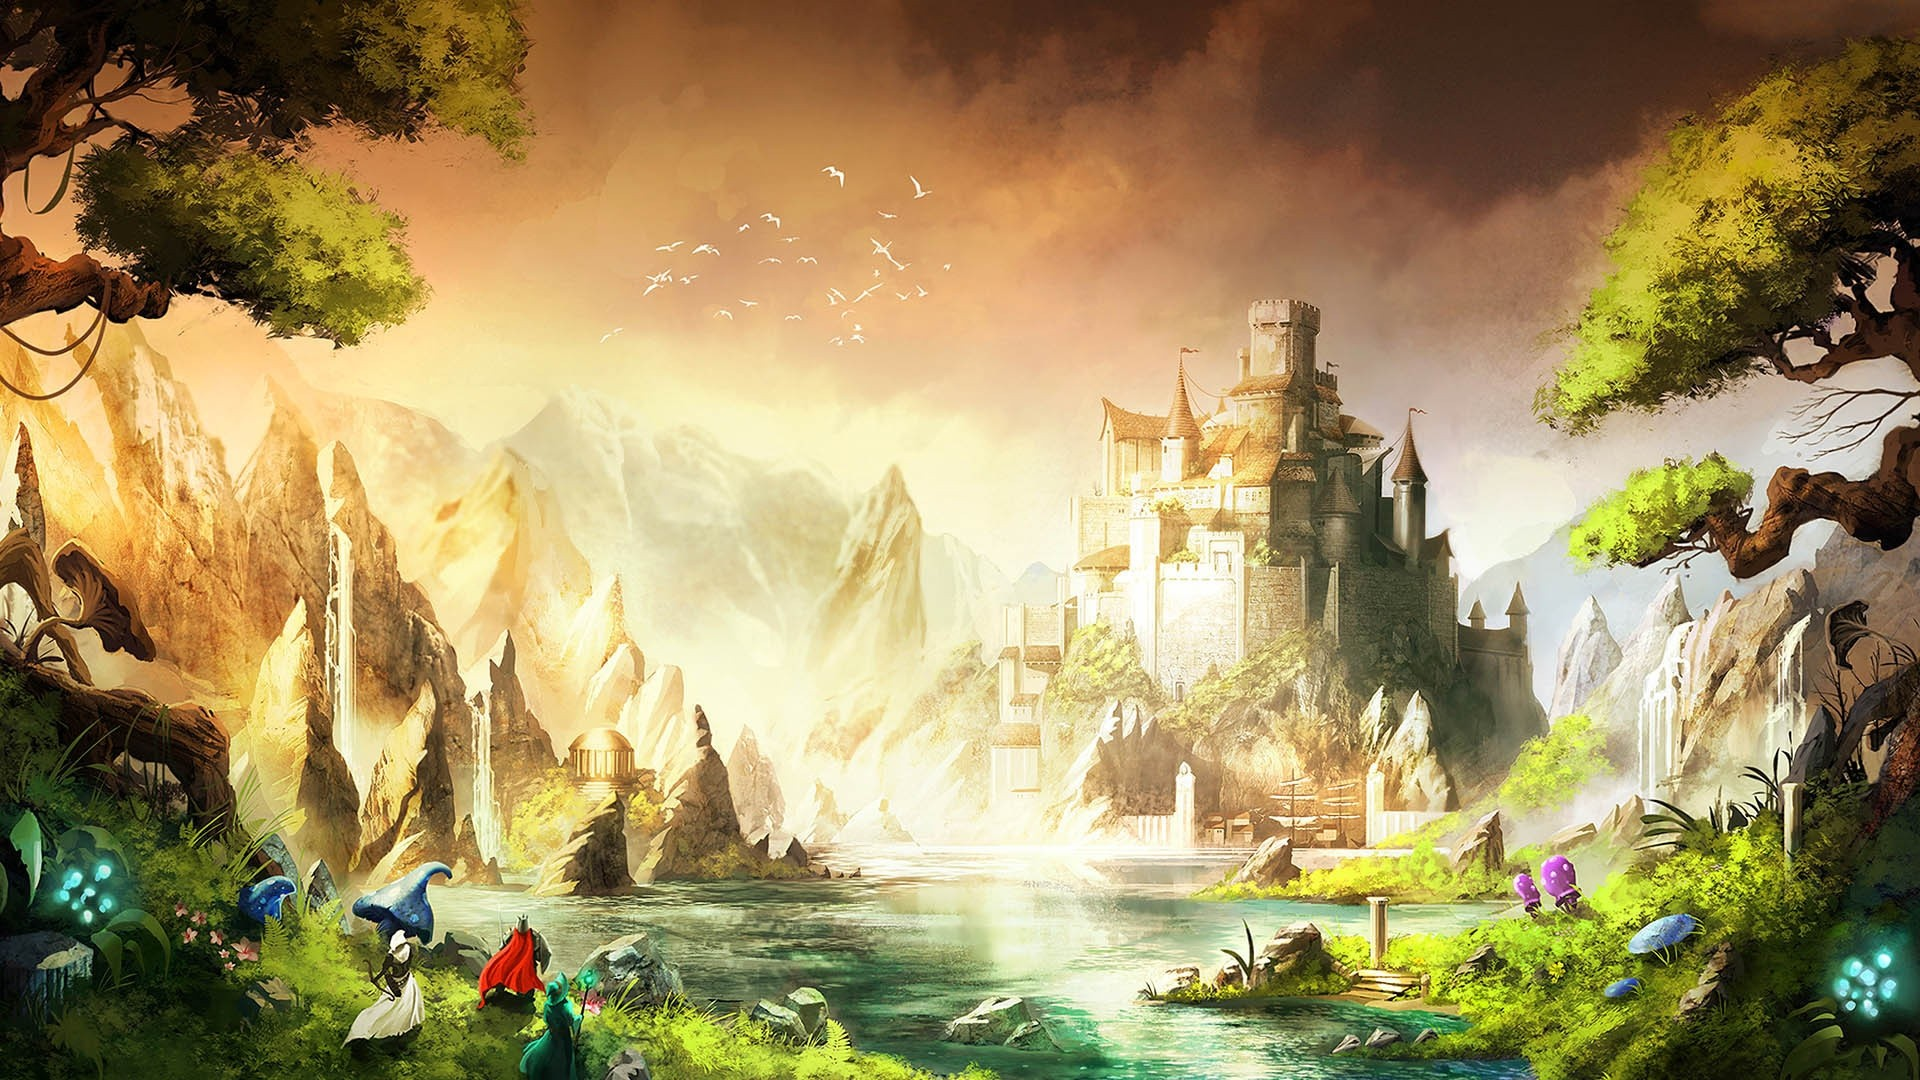 Free Fantasy Wallpaper Download Full